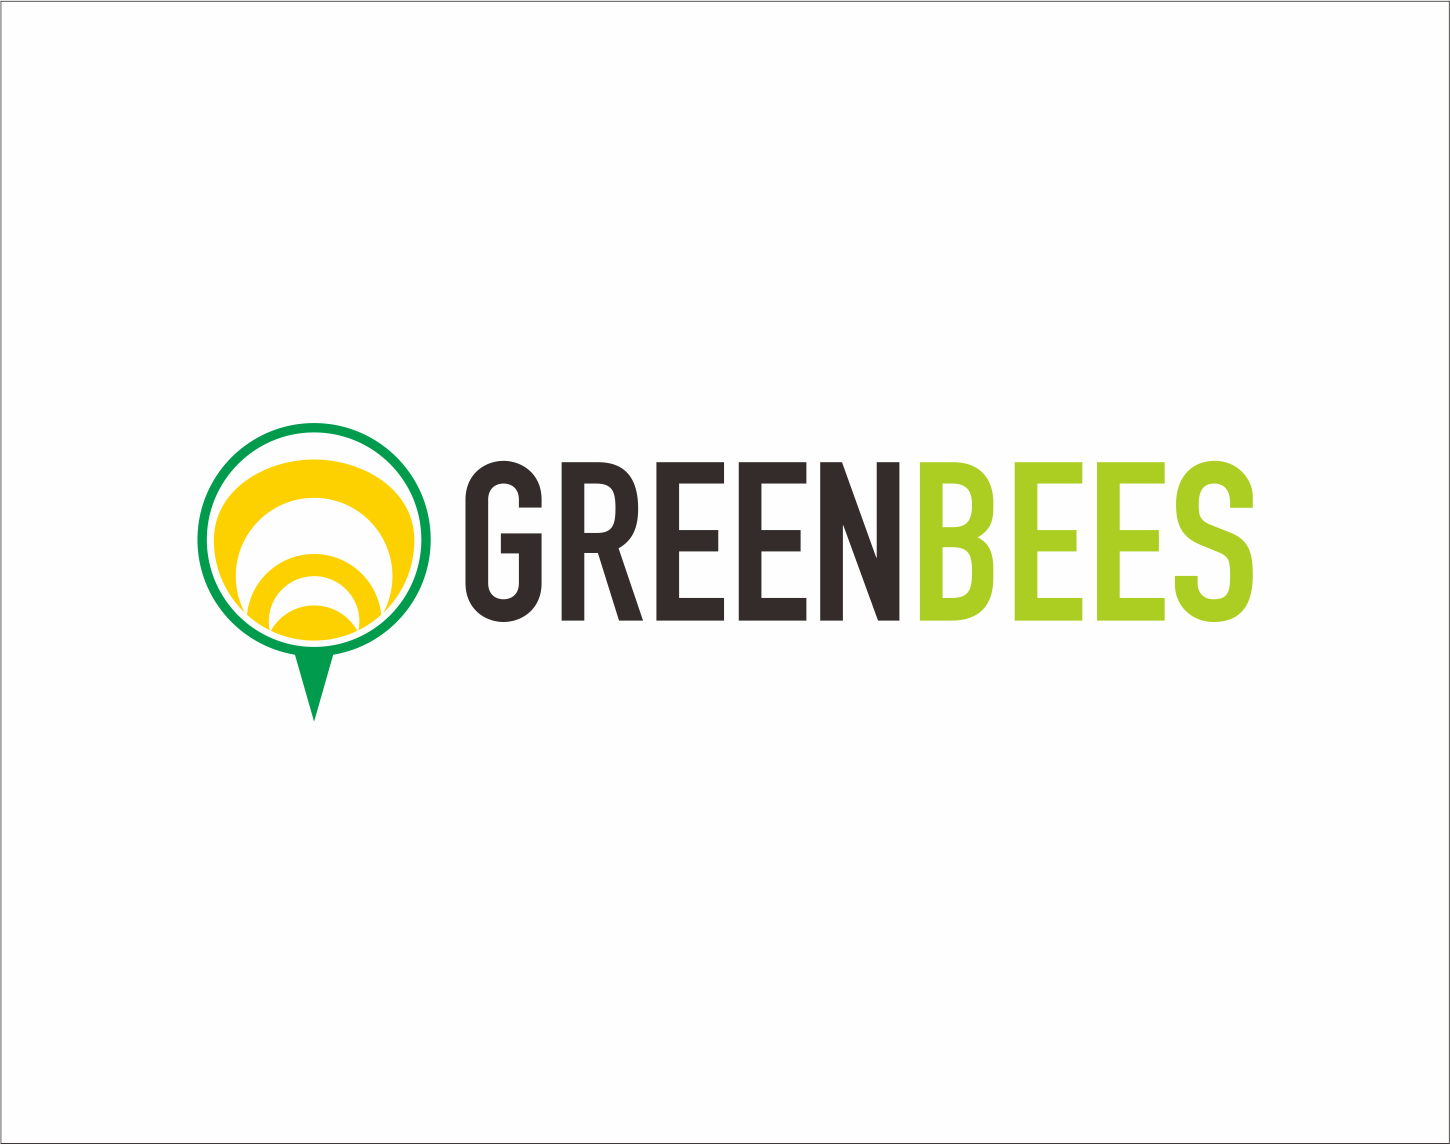 Logo Design by Armada Jamaluddin - Entry No. 374 in the Logo Design Contest Greenbees Logo Design.